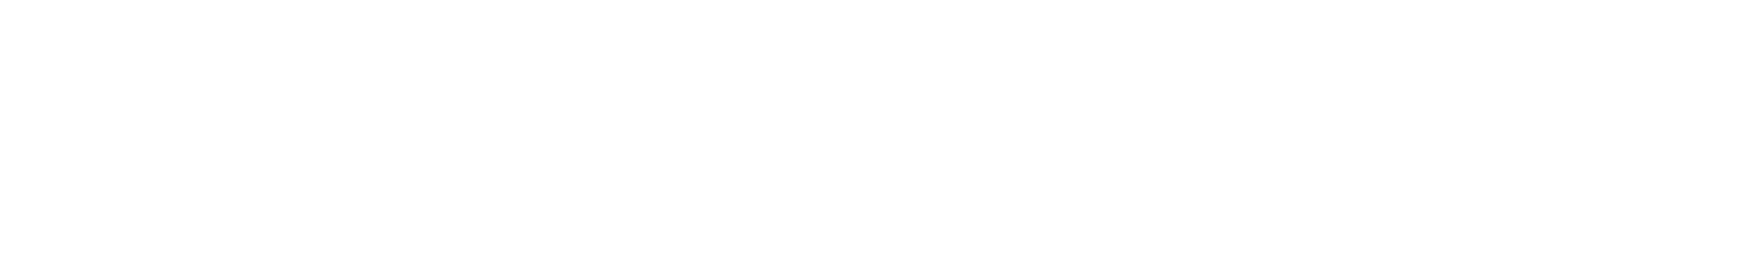 Connecting Britain logo RGB White 150ppi.png